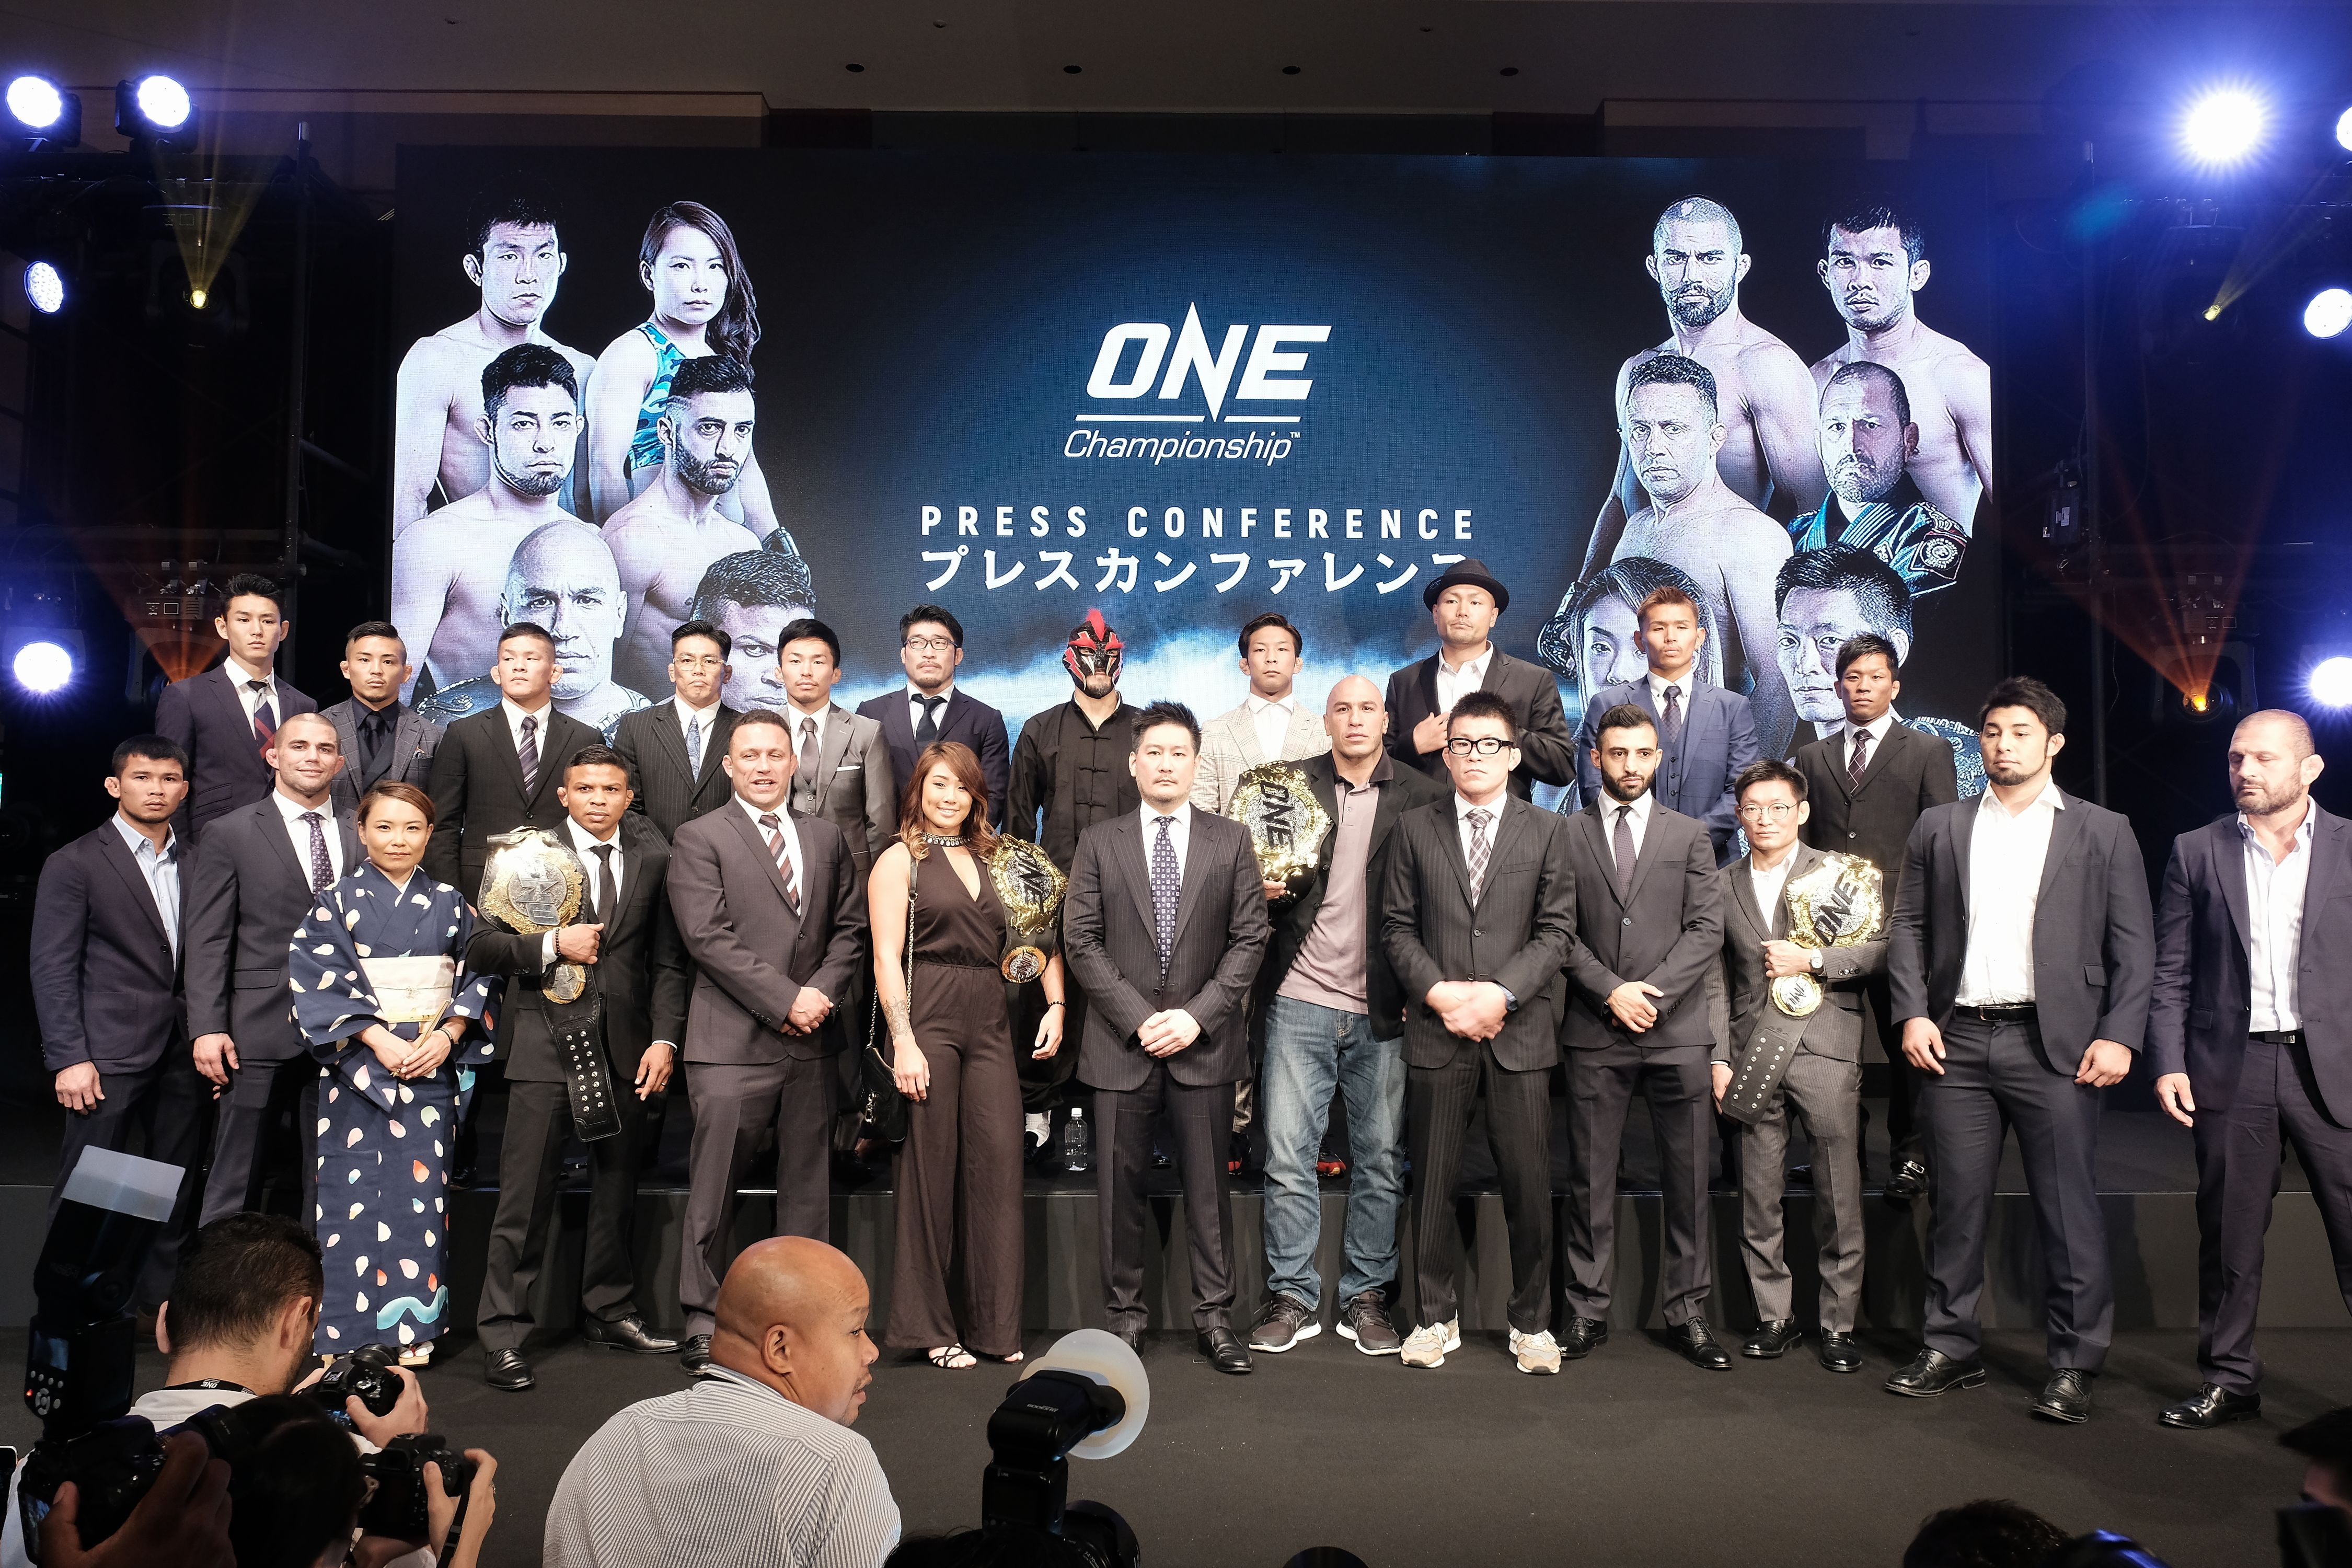 ONE CHAMPIONSHIP OFFICIALLY ANNOUNCES LIVE EVENT IN TOKYO SCHEDULED FOR MARCH 2019 - ONE CHAMPIONSHIP